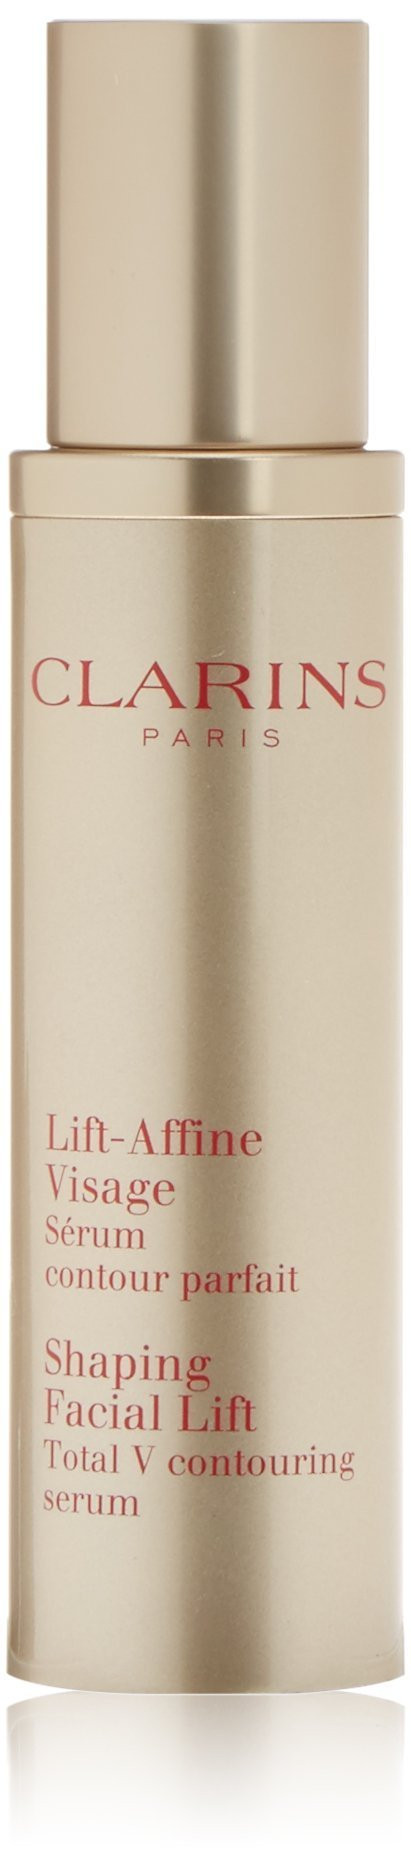 V Shaping Facial Lift Serum by Clarins #11